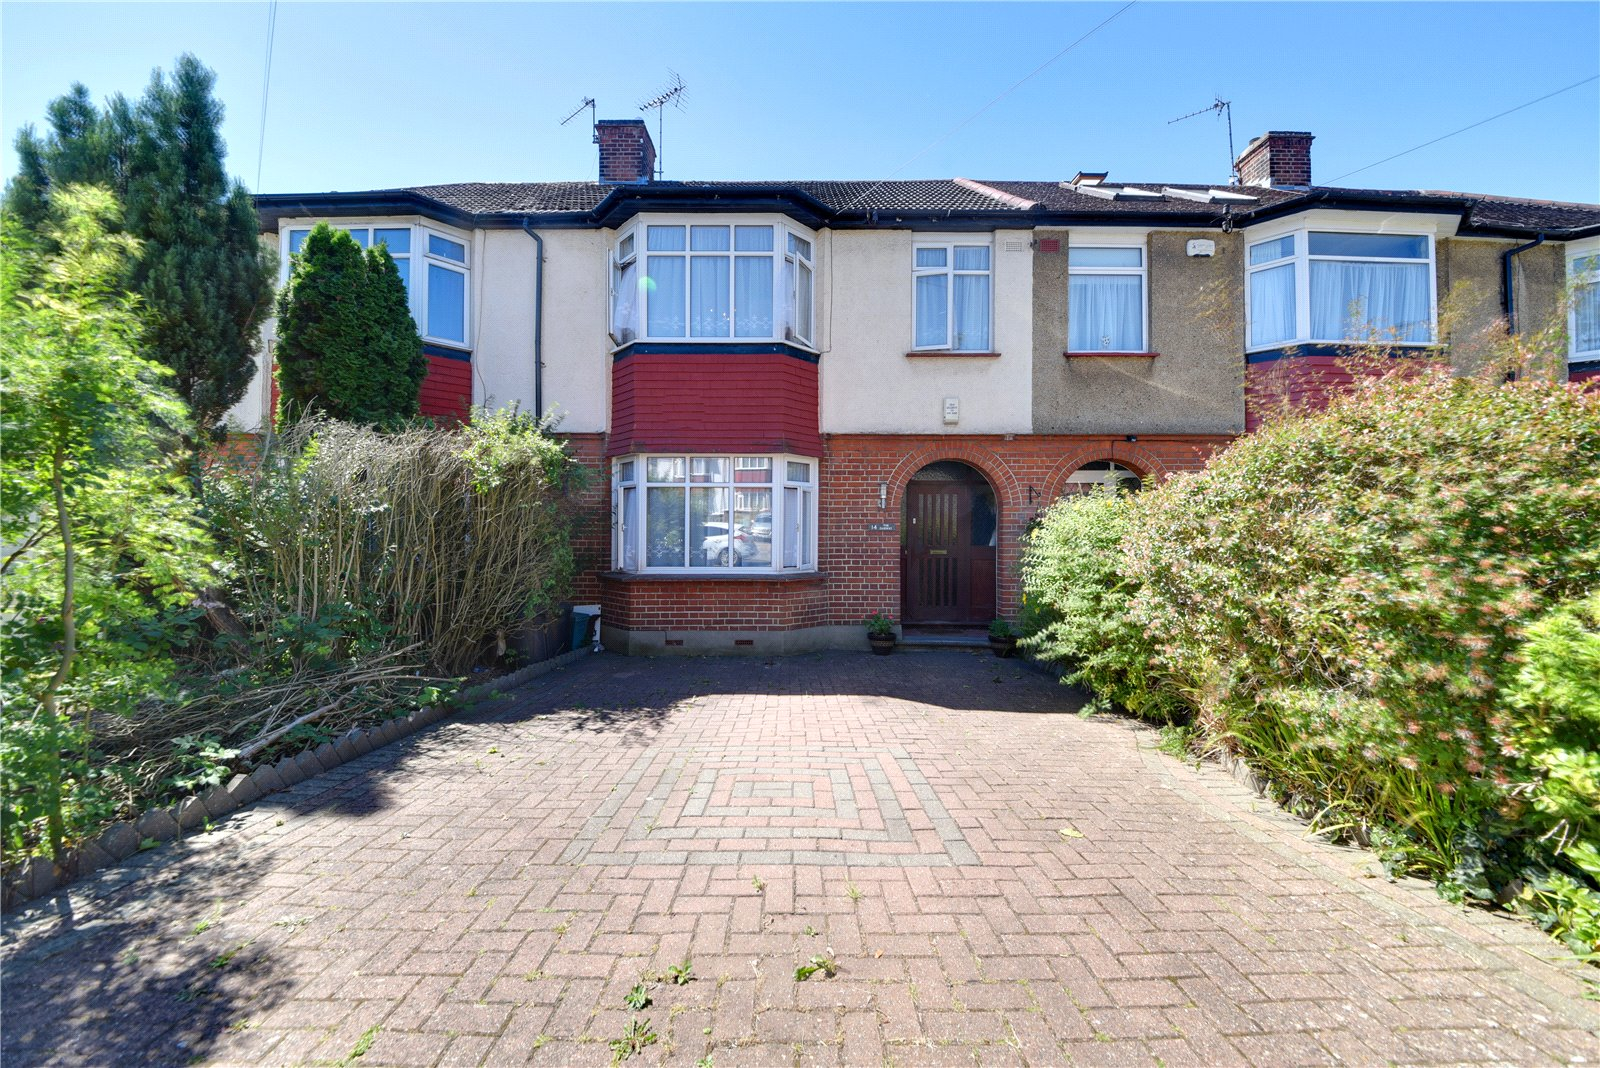 3 bed house for sale in Oakwood, N14 4NY, N14